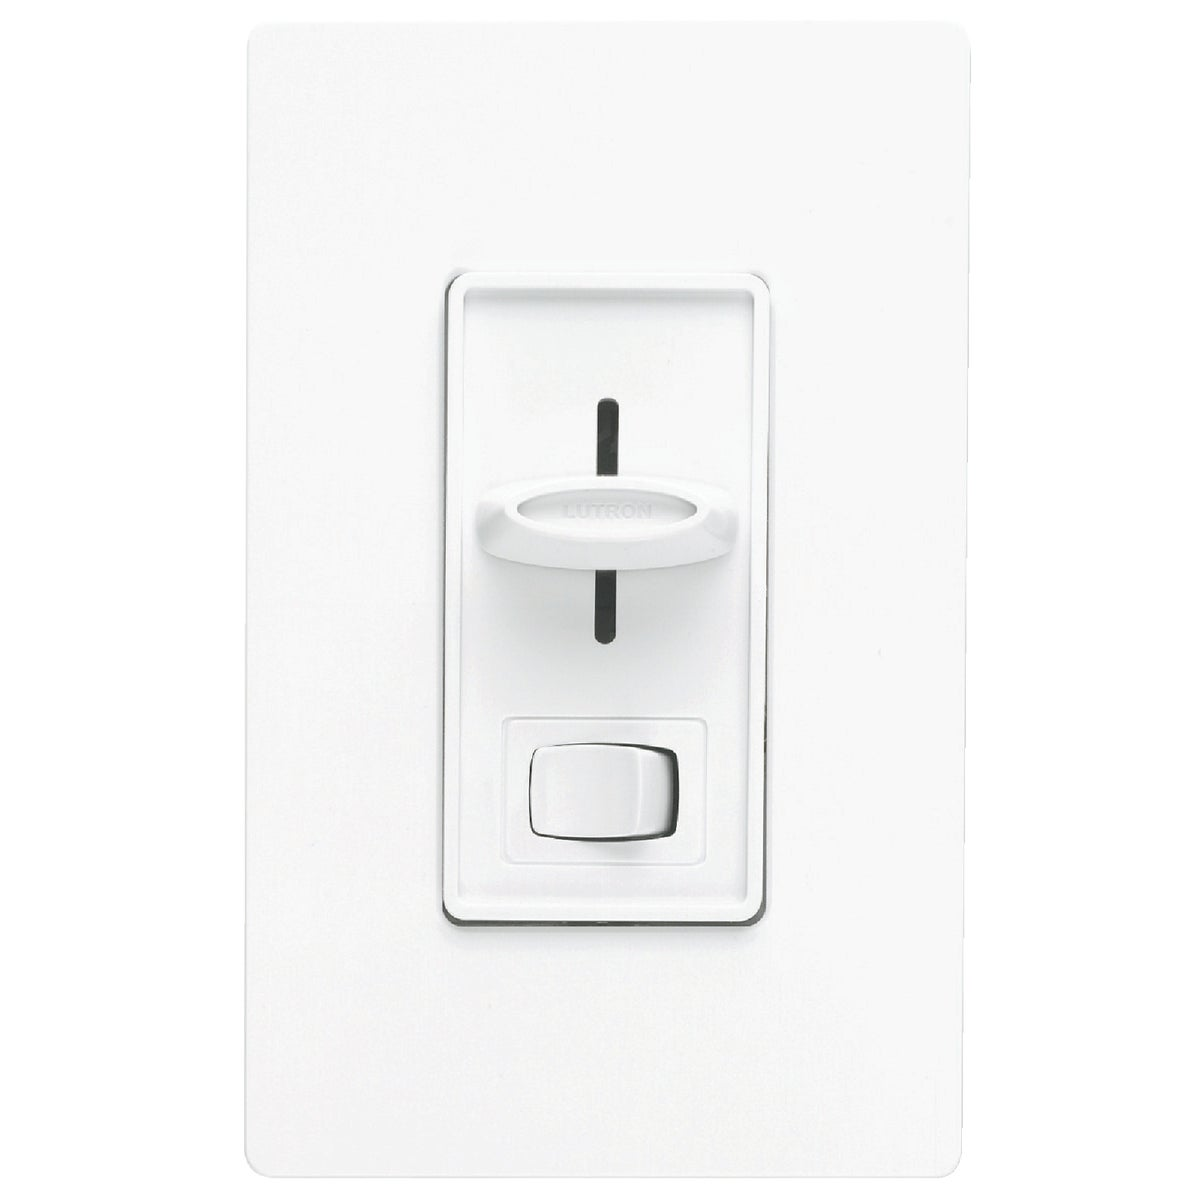 WHT 3-WAY SLIDE DIMMER - S-603PH-WH by Lutron Elect Co Inc